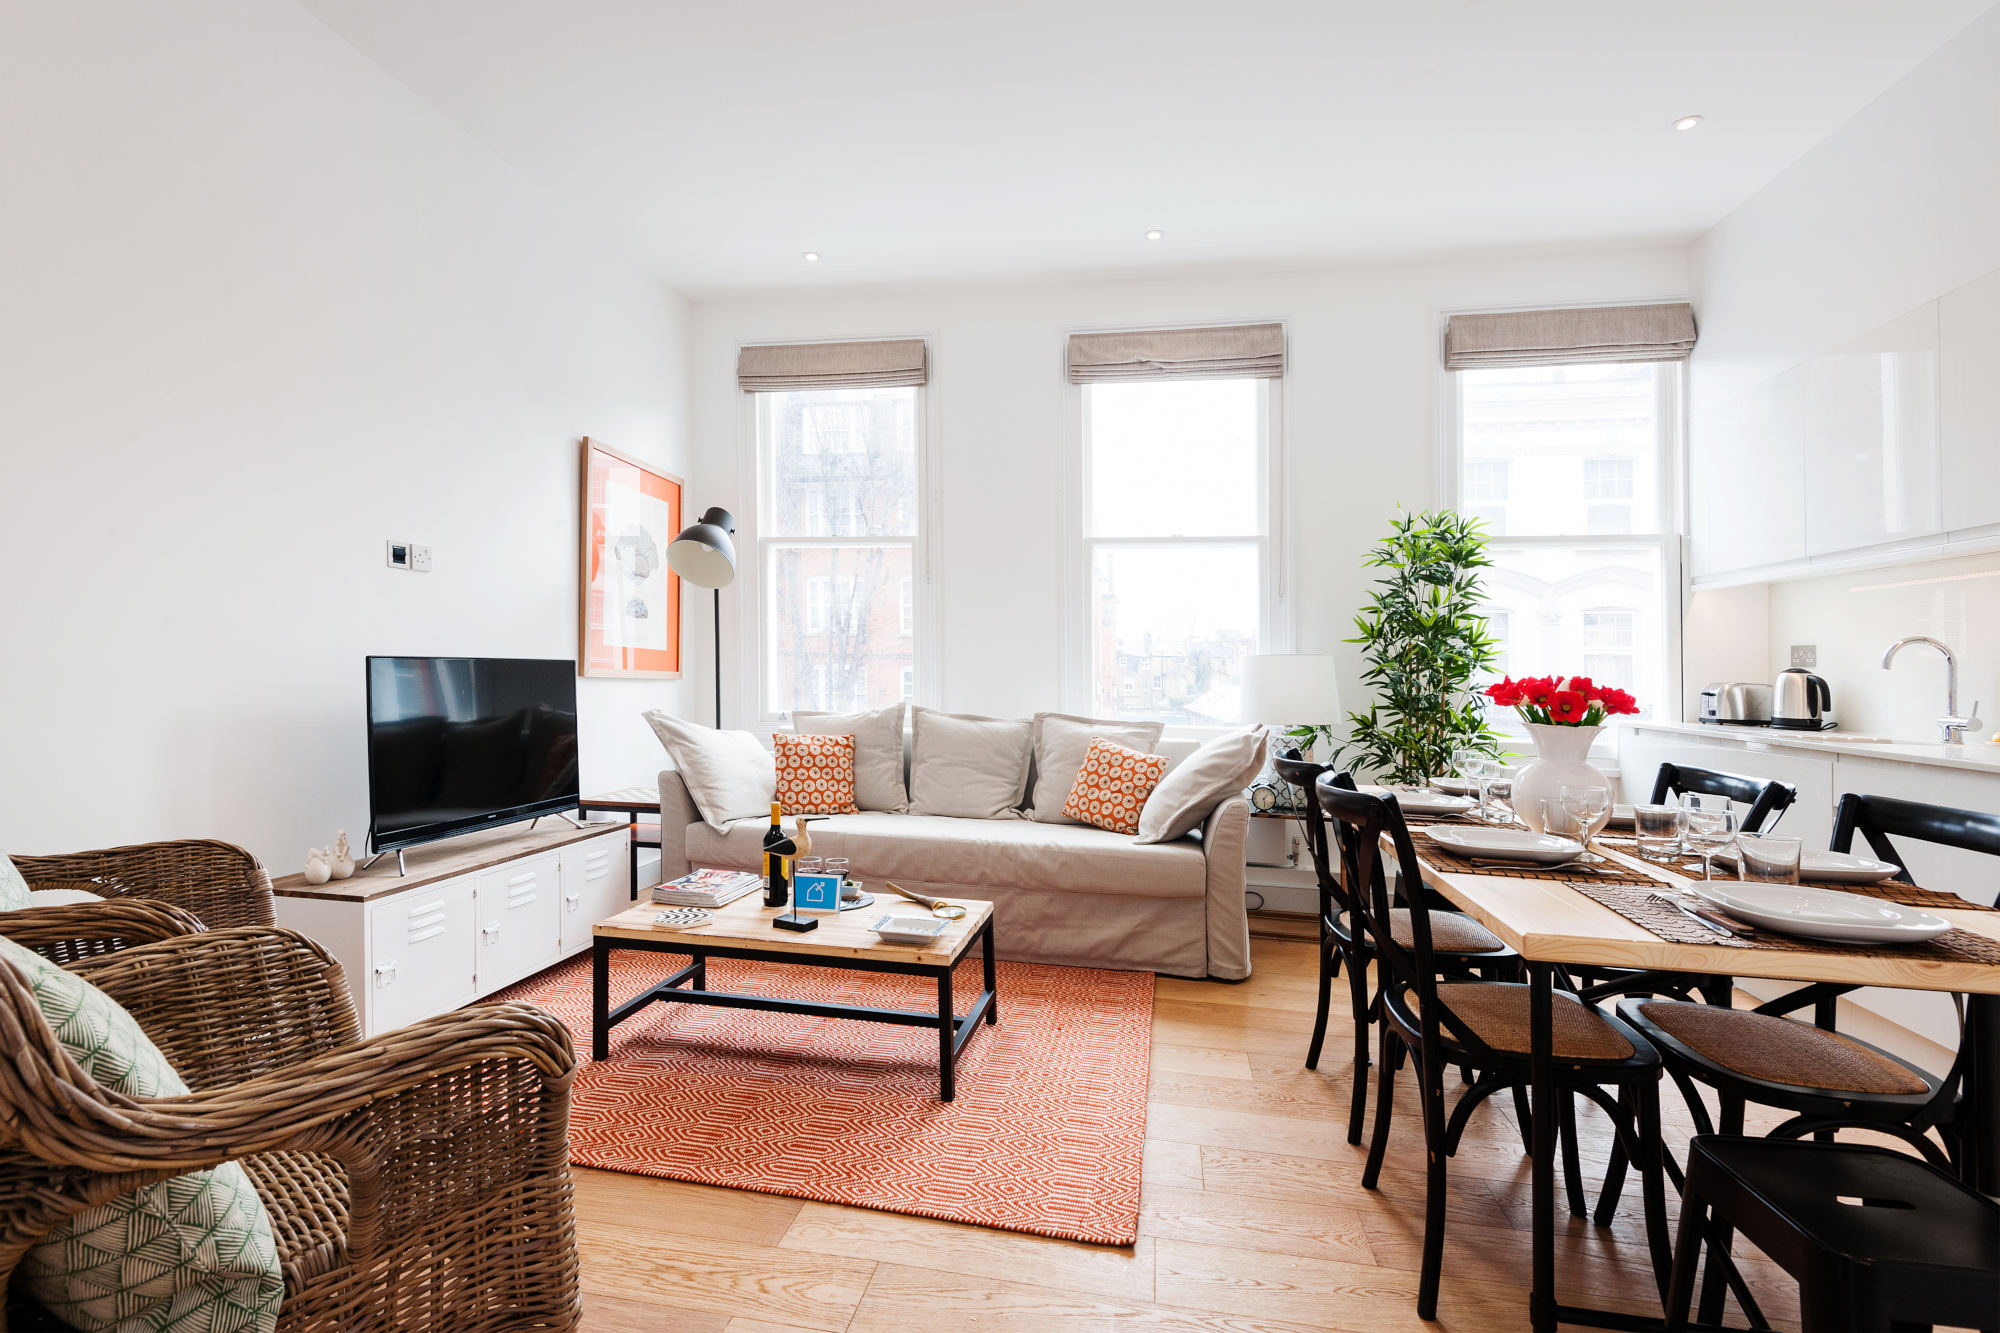 two bedroom lillie road apartment london - living and dining area - large windows